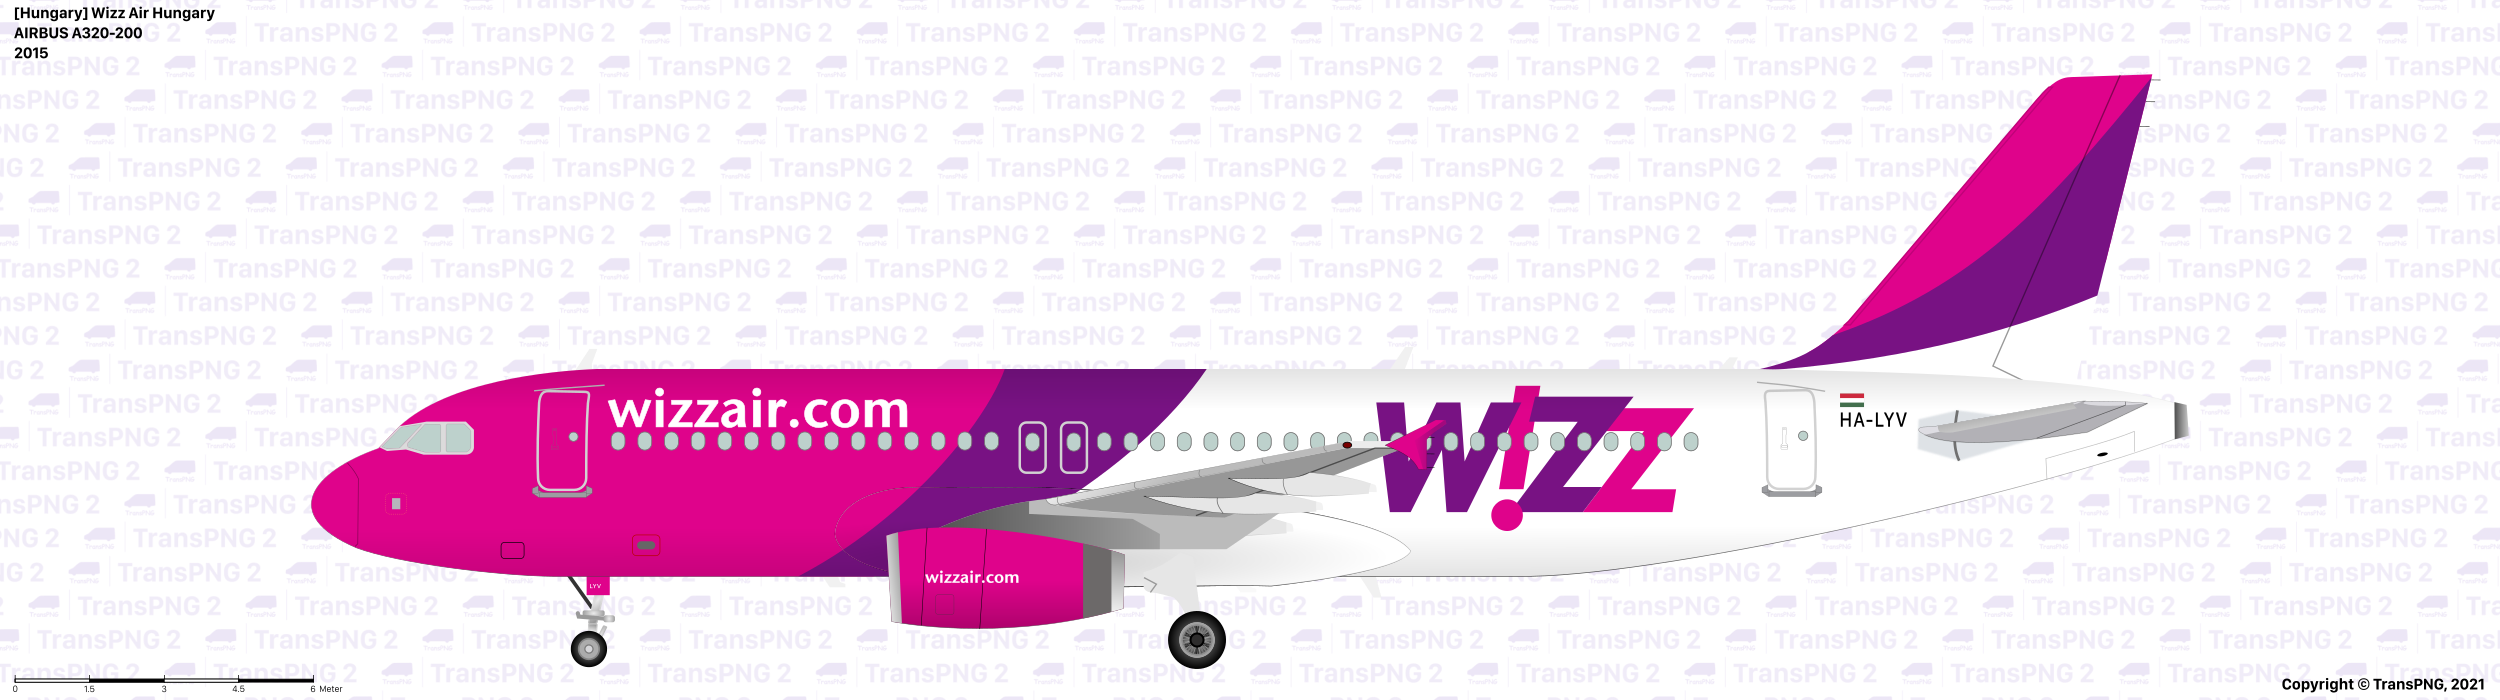 [25131] Wizz Air Hungary 25131